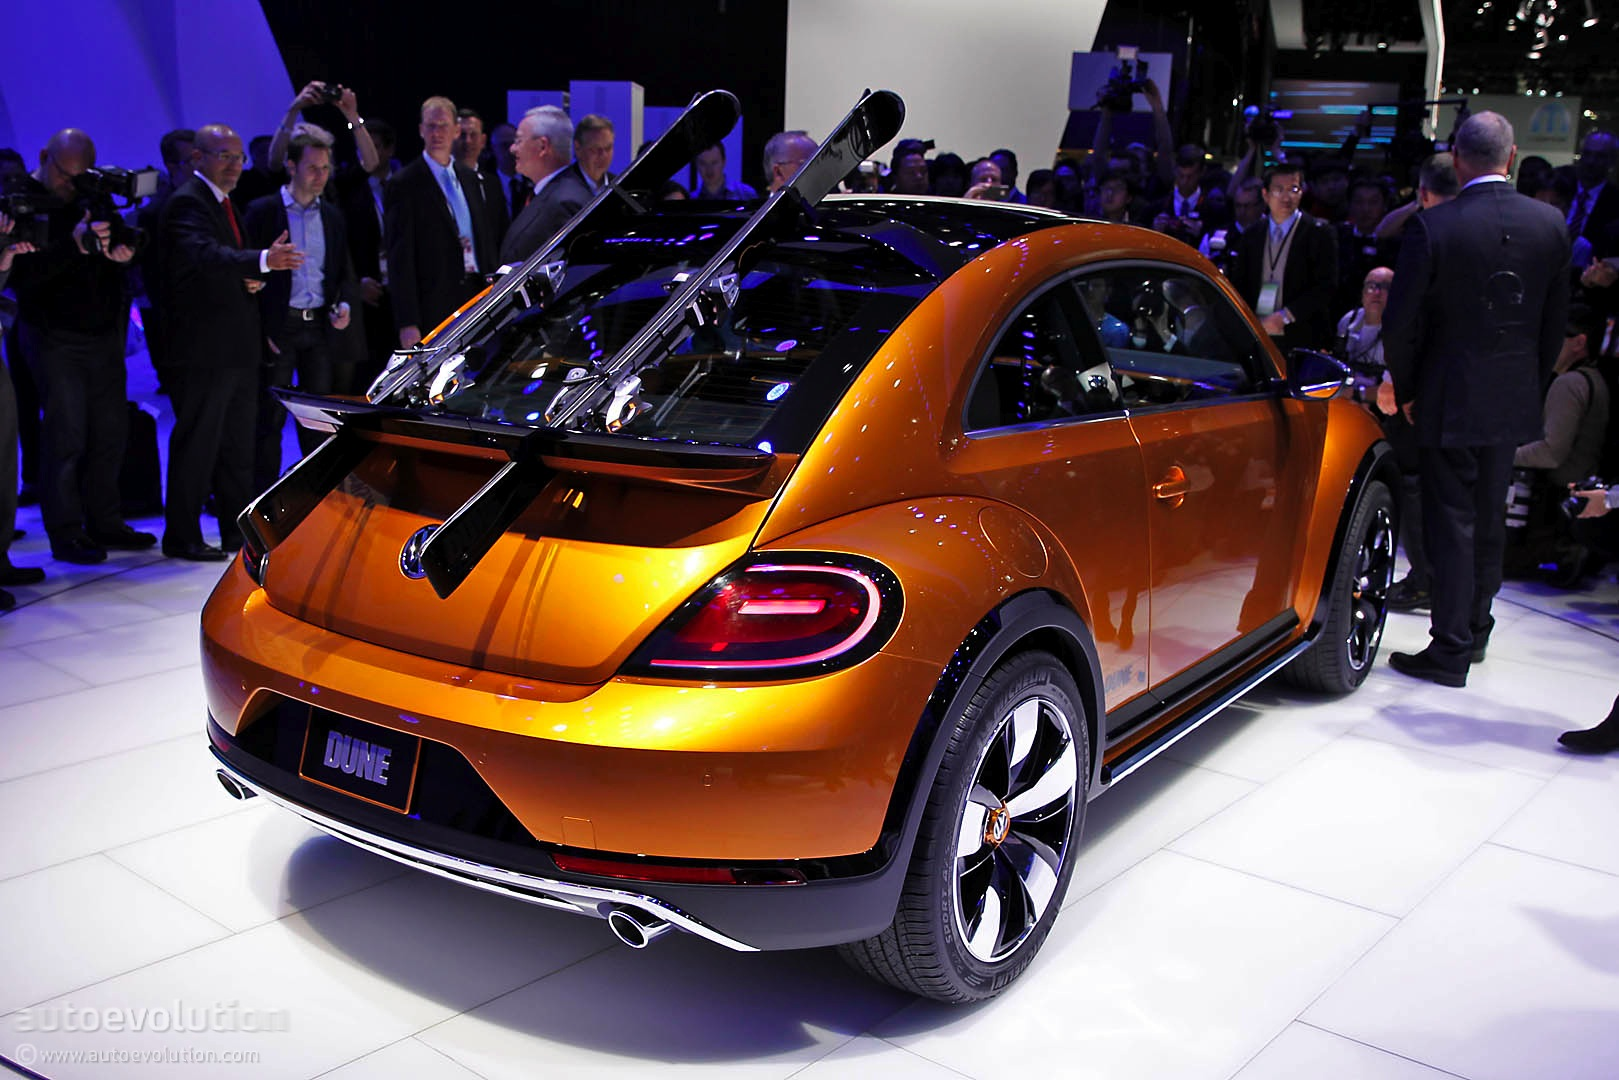 Volkswagen Of America >> New York: Volkswagen Confirms Beetle Dune Production in 2016, Shows 4 New Concepts - autoevolution